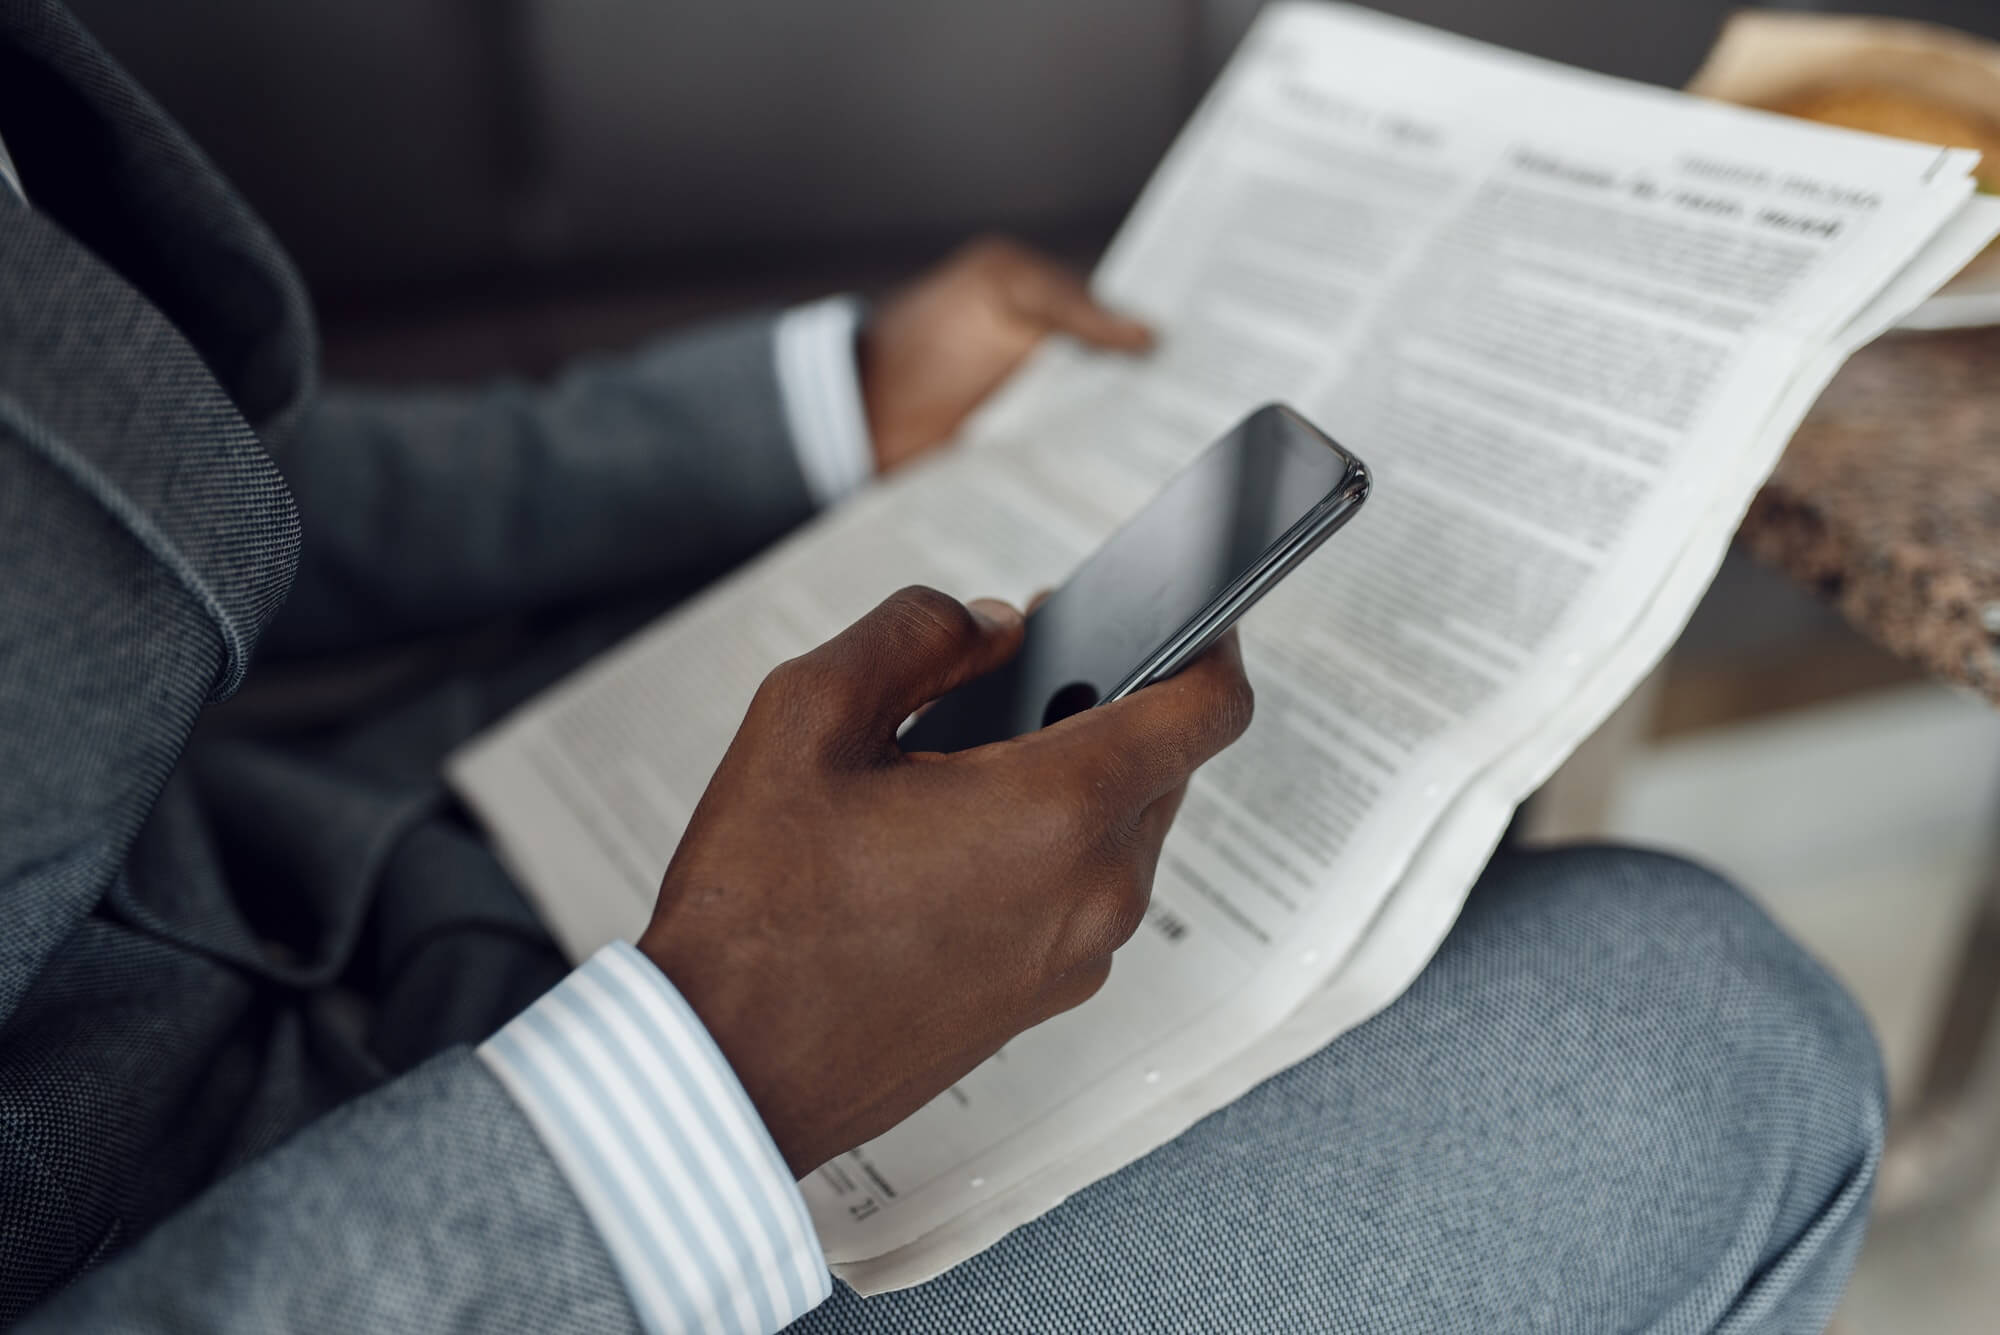 Ebony businessman hands with newspaper and phone